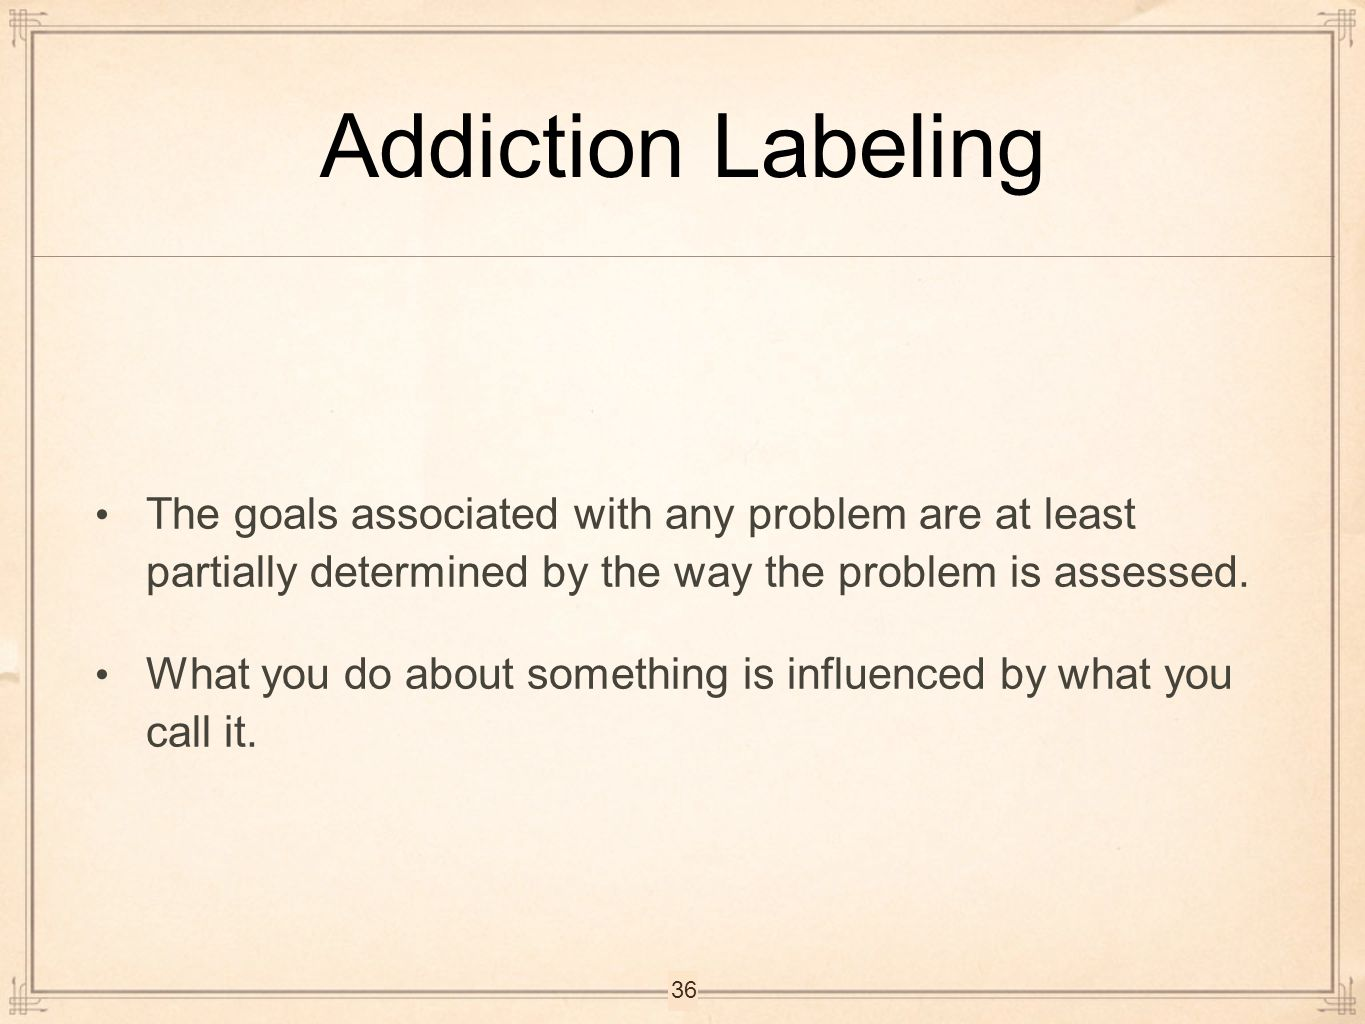 Addiction Labeling The goals associated with any problem are at least partially determined by the way the problem is assessed. What you do about somet